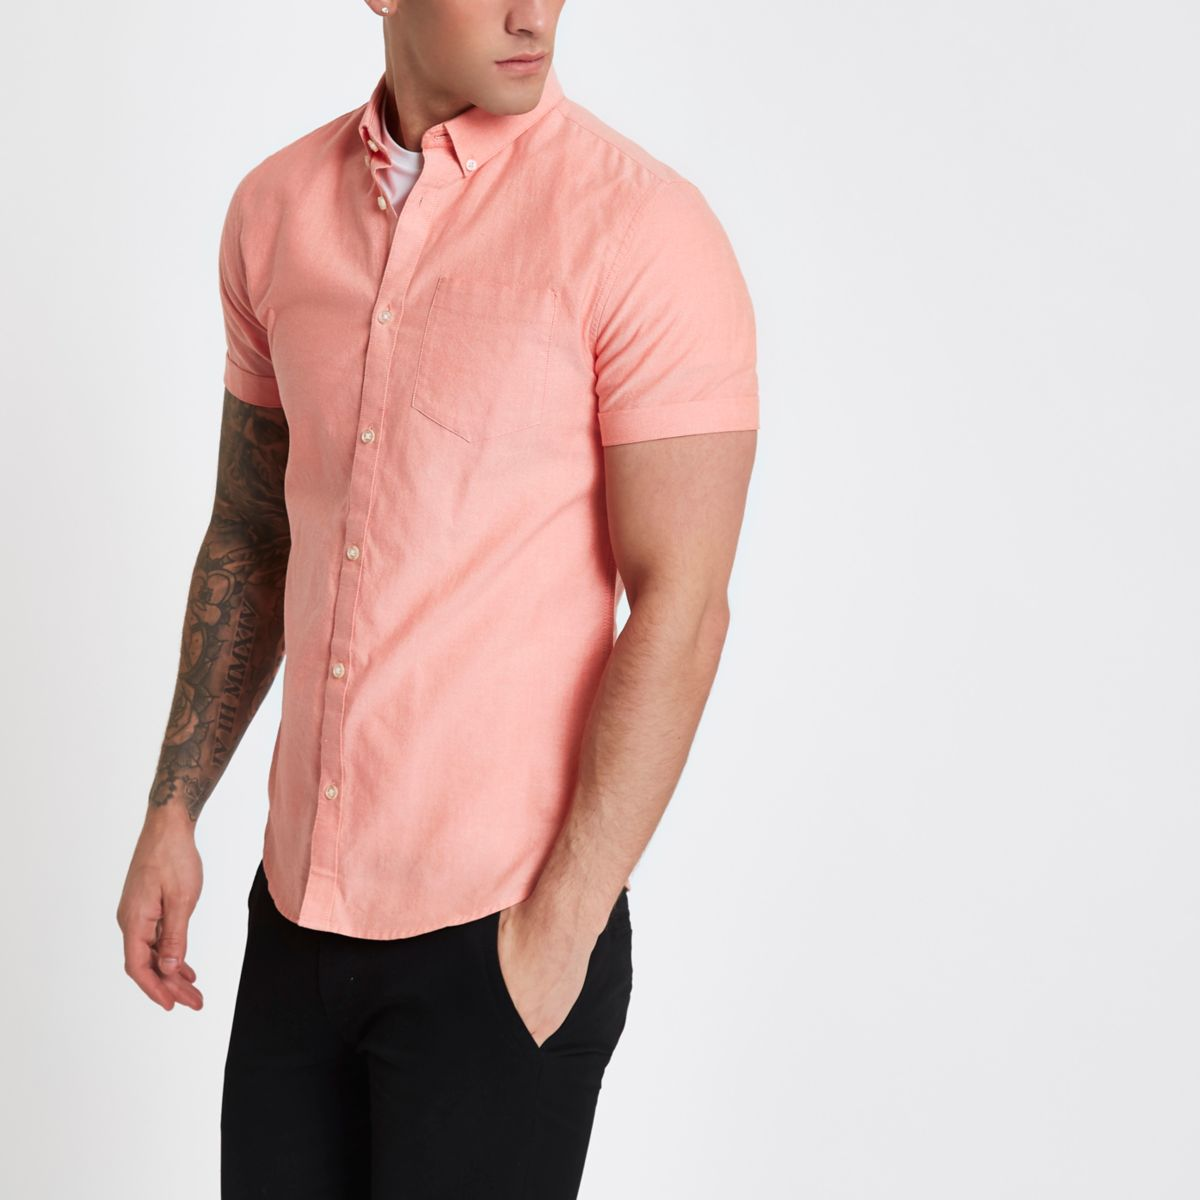 Coral short sleeve button down oxford shirt short sleeve for Coral shirts for guys